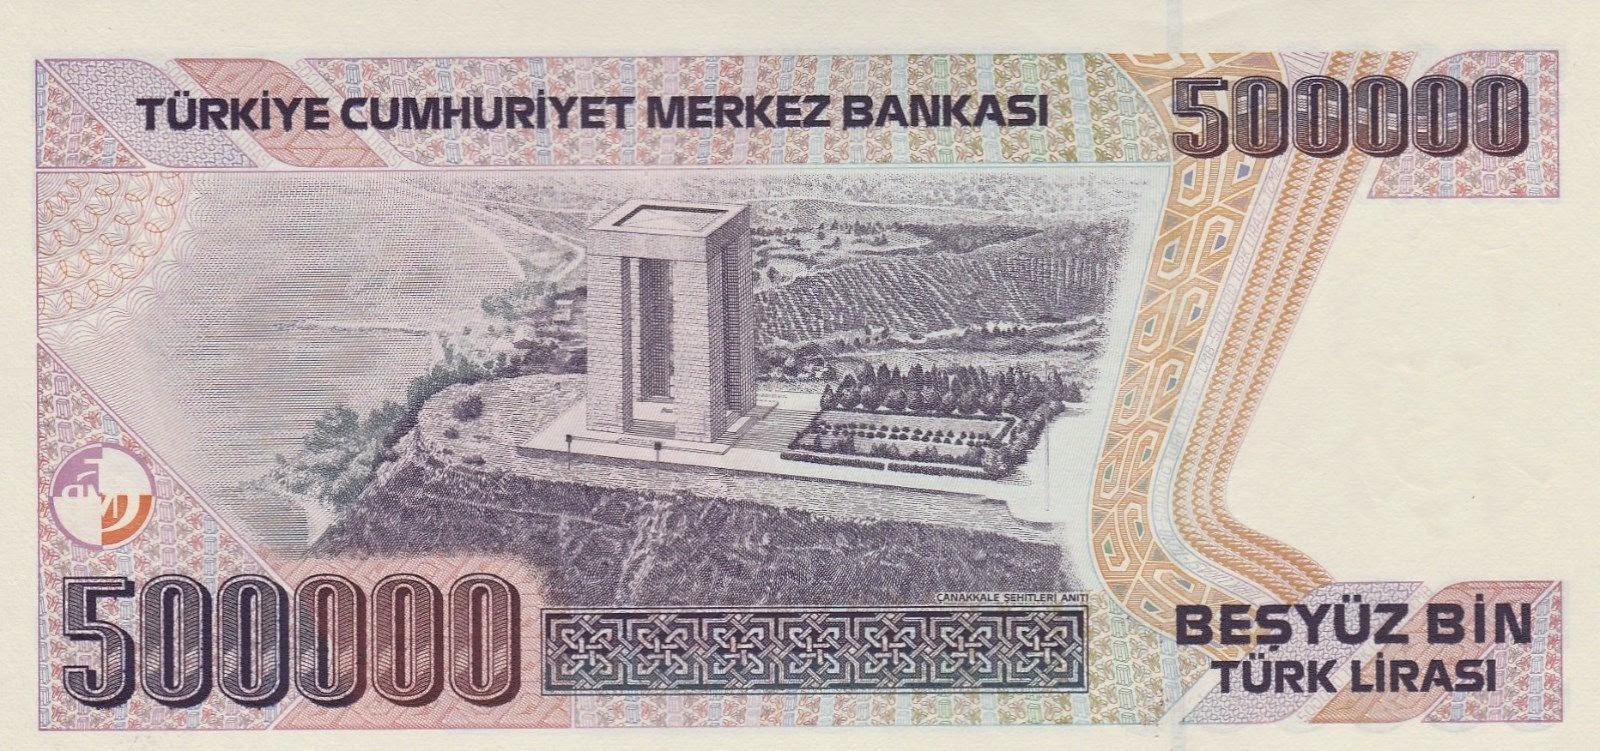 500000 Turkish Lira Note Monument of Canakkale Martyrs